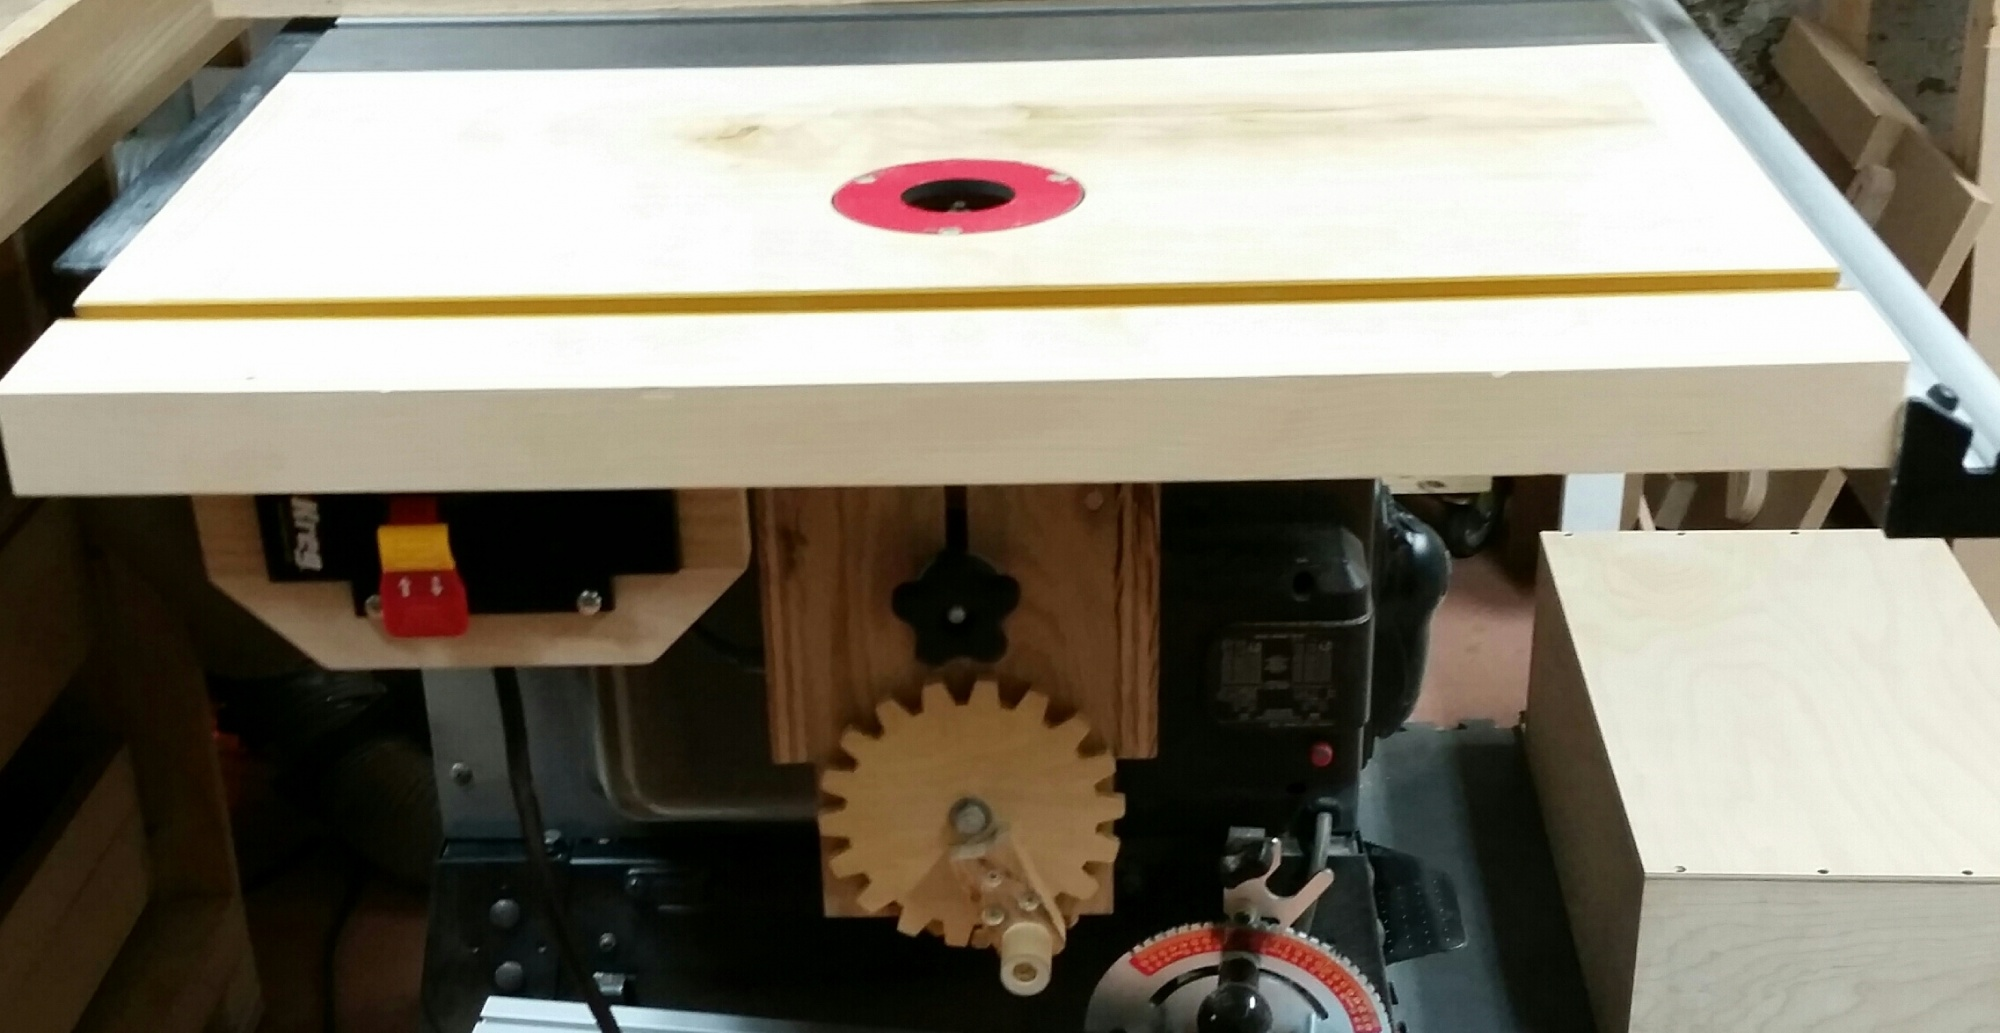 Table saw extension wing router table wshop built lift router forums click image for larger version name 2014 10 29 211138 keyboard keysfo Choice Image